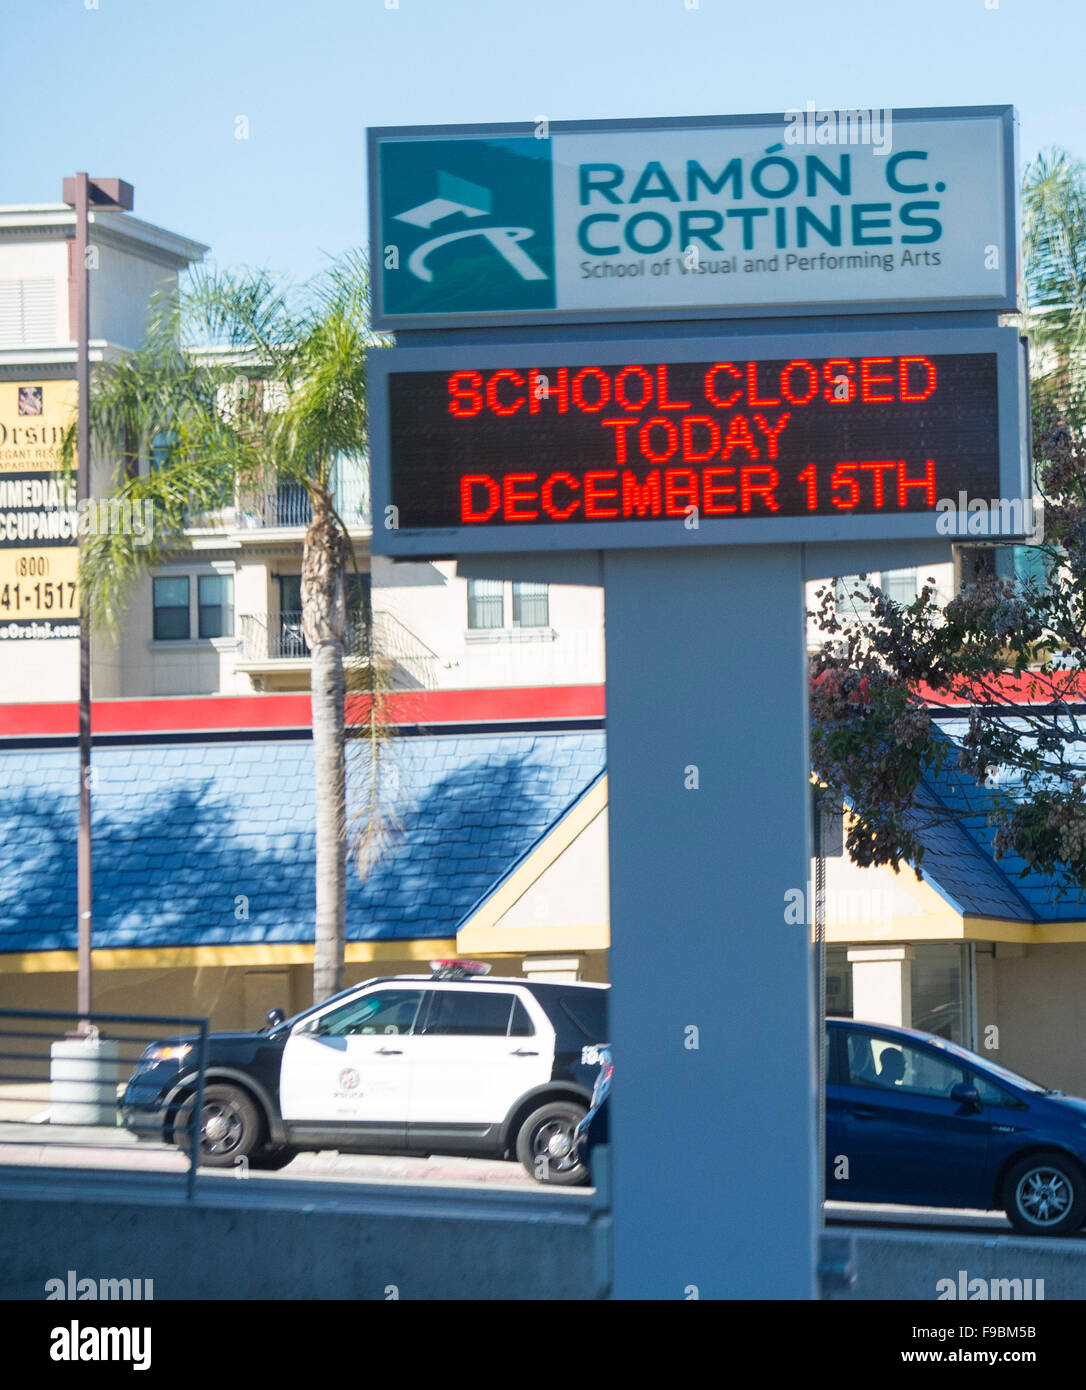 Los Angeles, California, USA. 15th December, 2015. Photo taken on Dec. 15, 2015 shows a sign in front of the Ramon - Stock Image